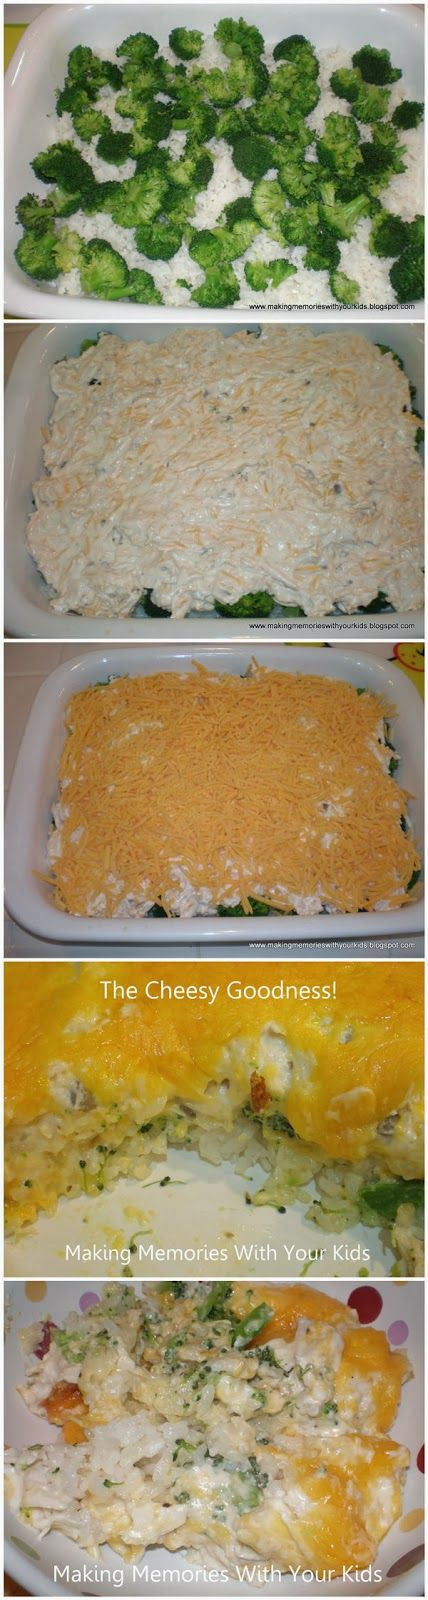 """Chicken Broccoli Casserole Ingredients: 3-4 cups cooked rice 4 cups cooked broccoli cut into """"chunks"""" 1 cup sour cream 1/2 cup mayonnaise 1 Tbsp. lemon juice 1 10 ounce can of cream of chicken soup…"""